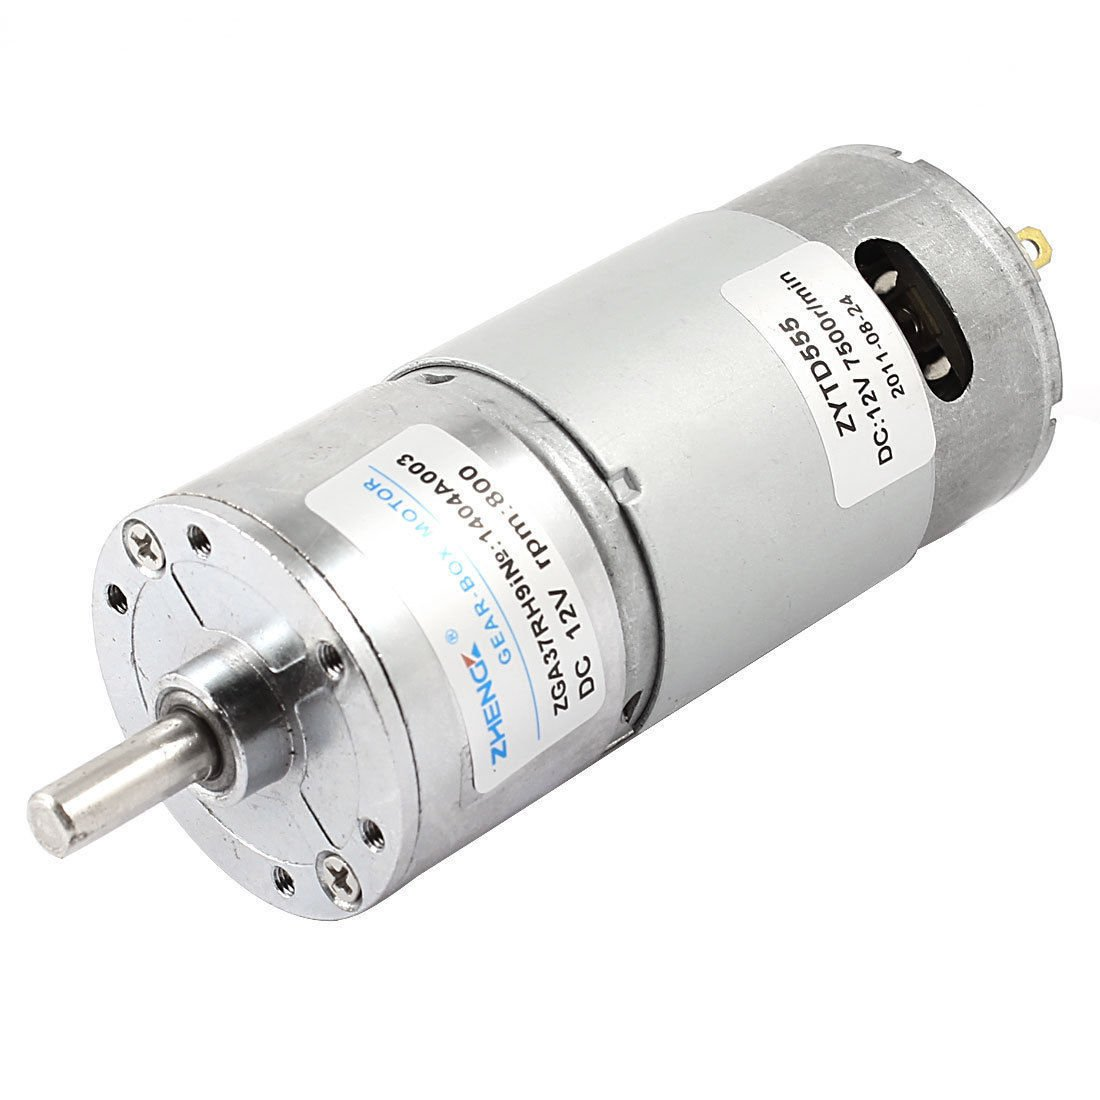 DC 12V 7500RPM 6mm Shaft Dia Speed Reduce Magnetic Electric Geared Box Motor